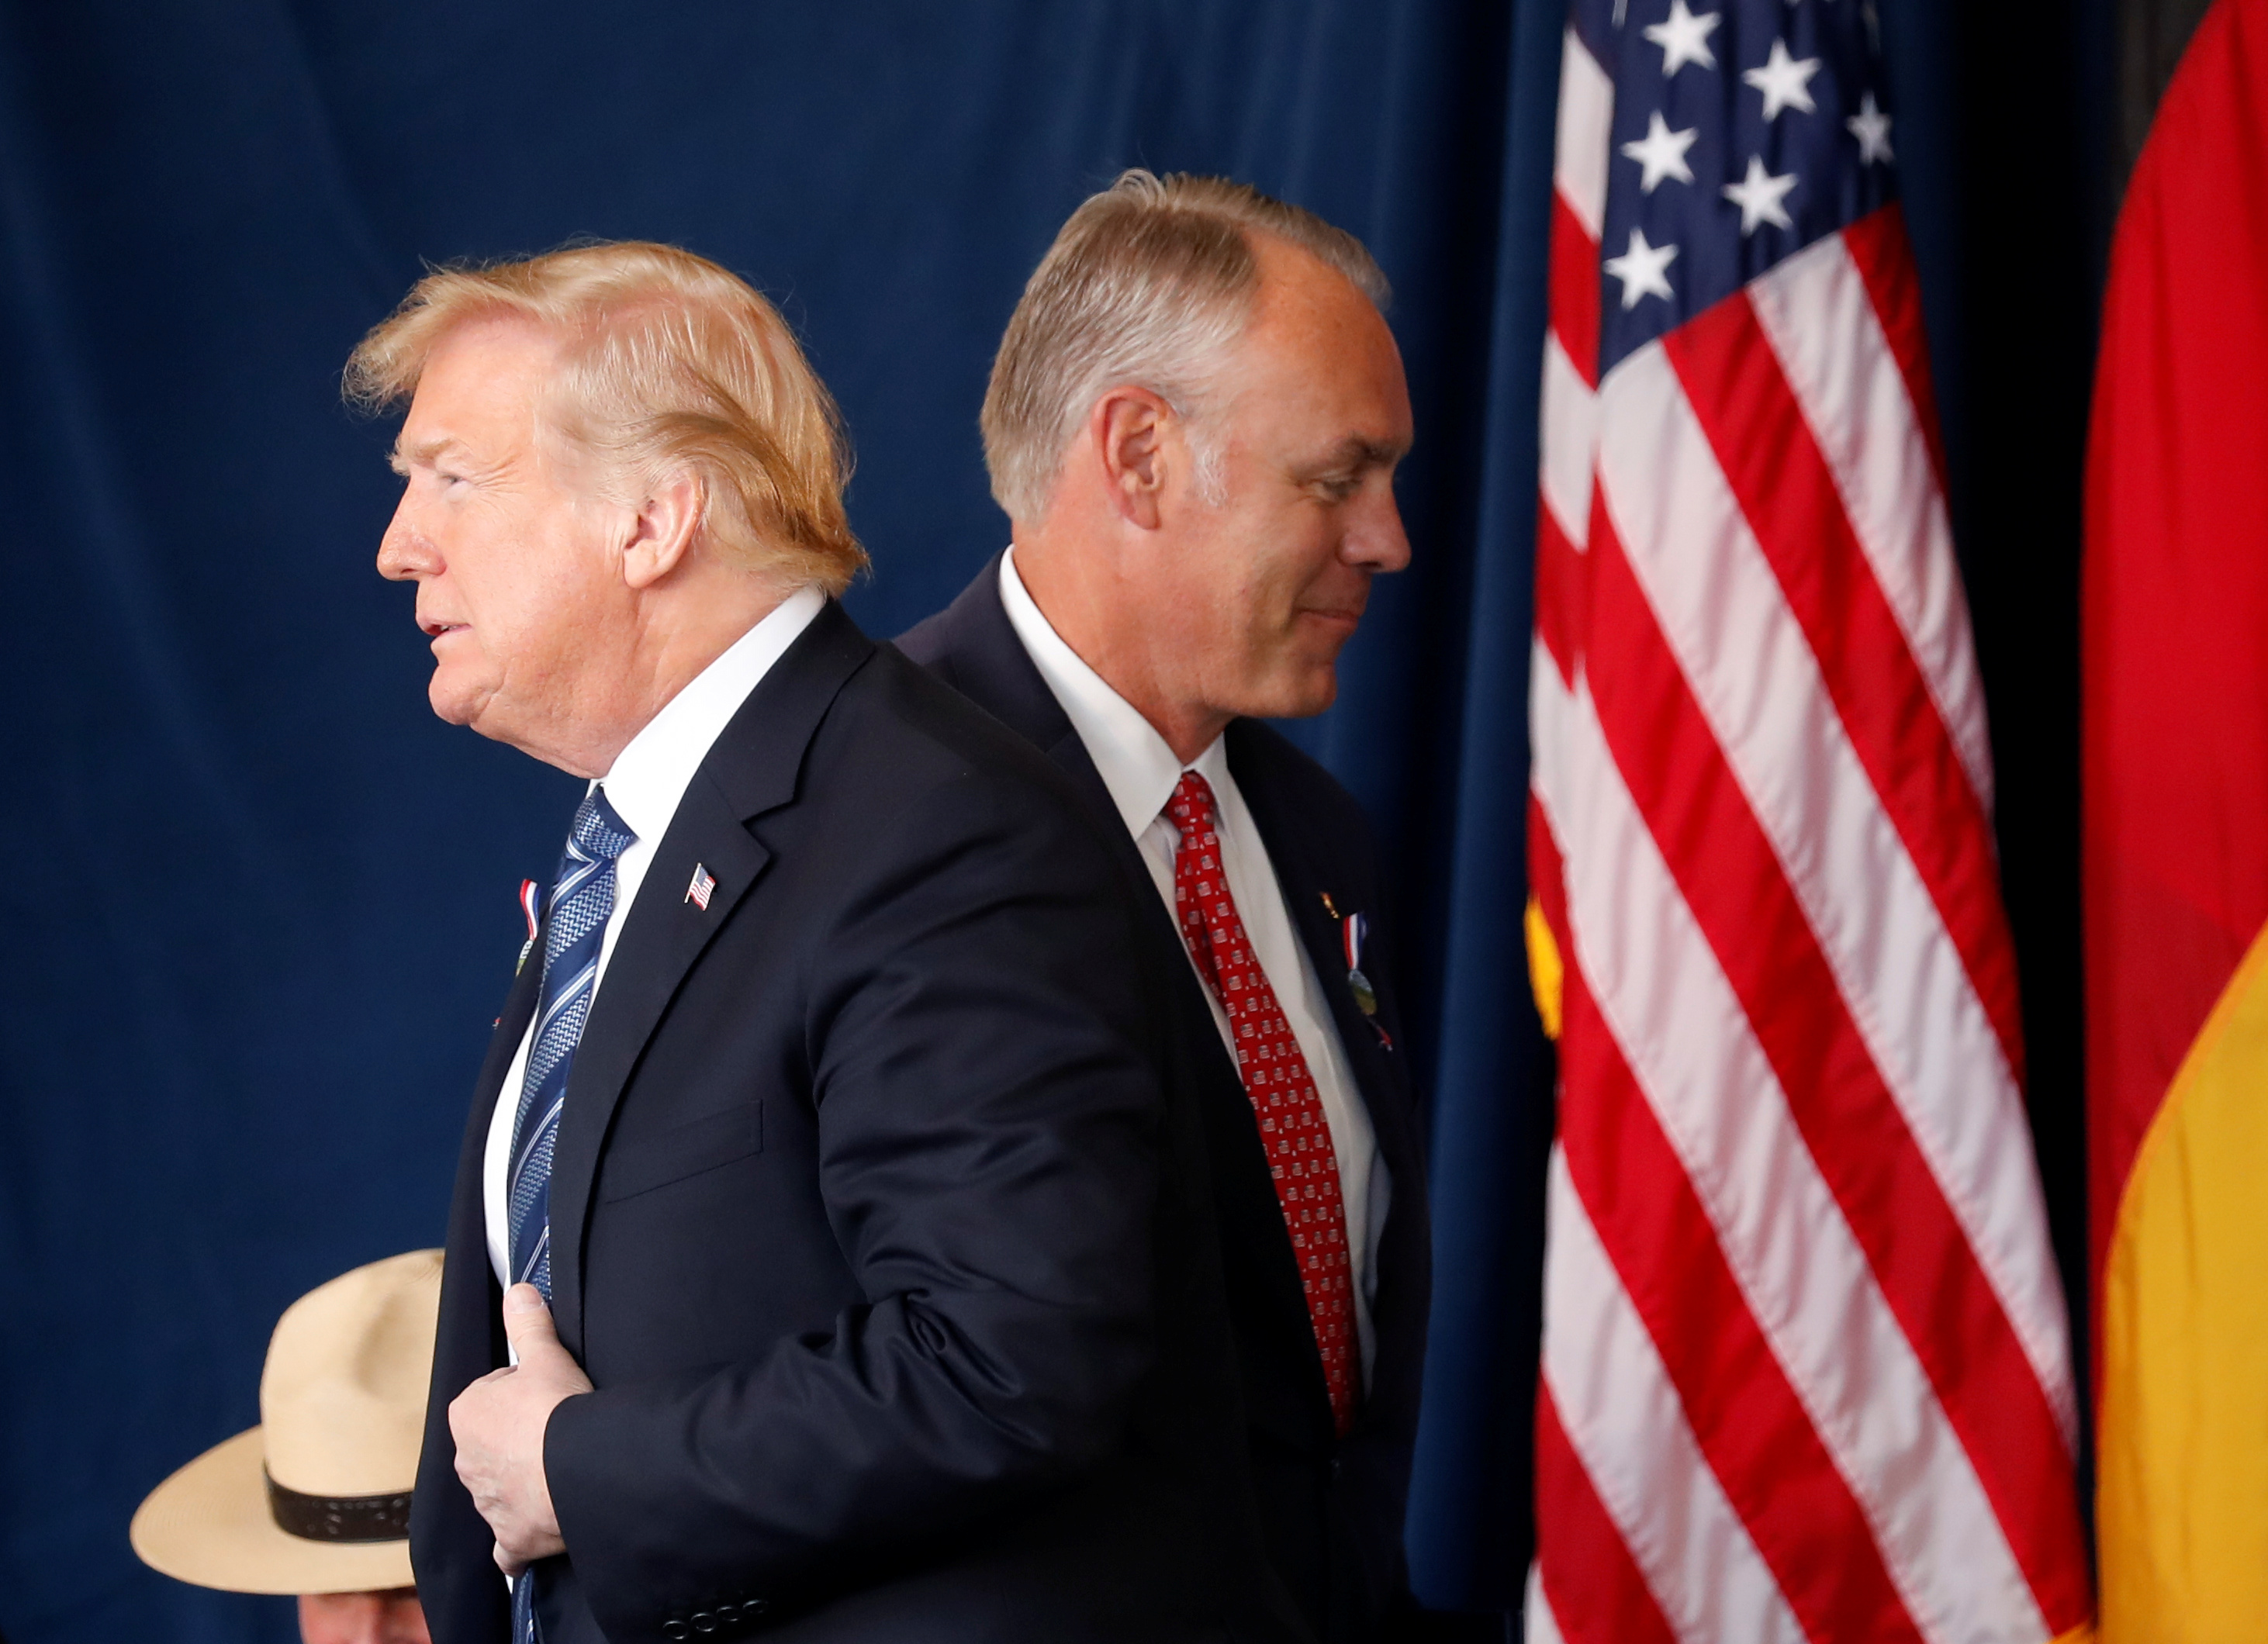 U.S. President Donald Trump walks past Interior Secretary Ryan Zinke as he stands to address the 17th annual September 11 observance at the Flight 93 National Memorial near Shanksville, Pennsylvania, U.S., September 11, 2018. REUTERS/Kevin Lamarque